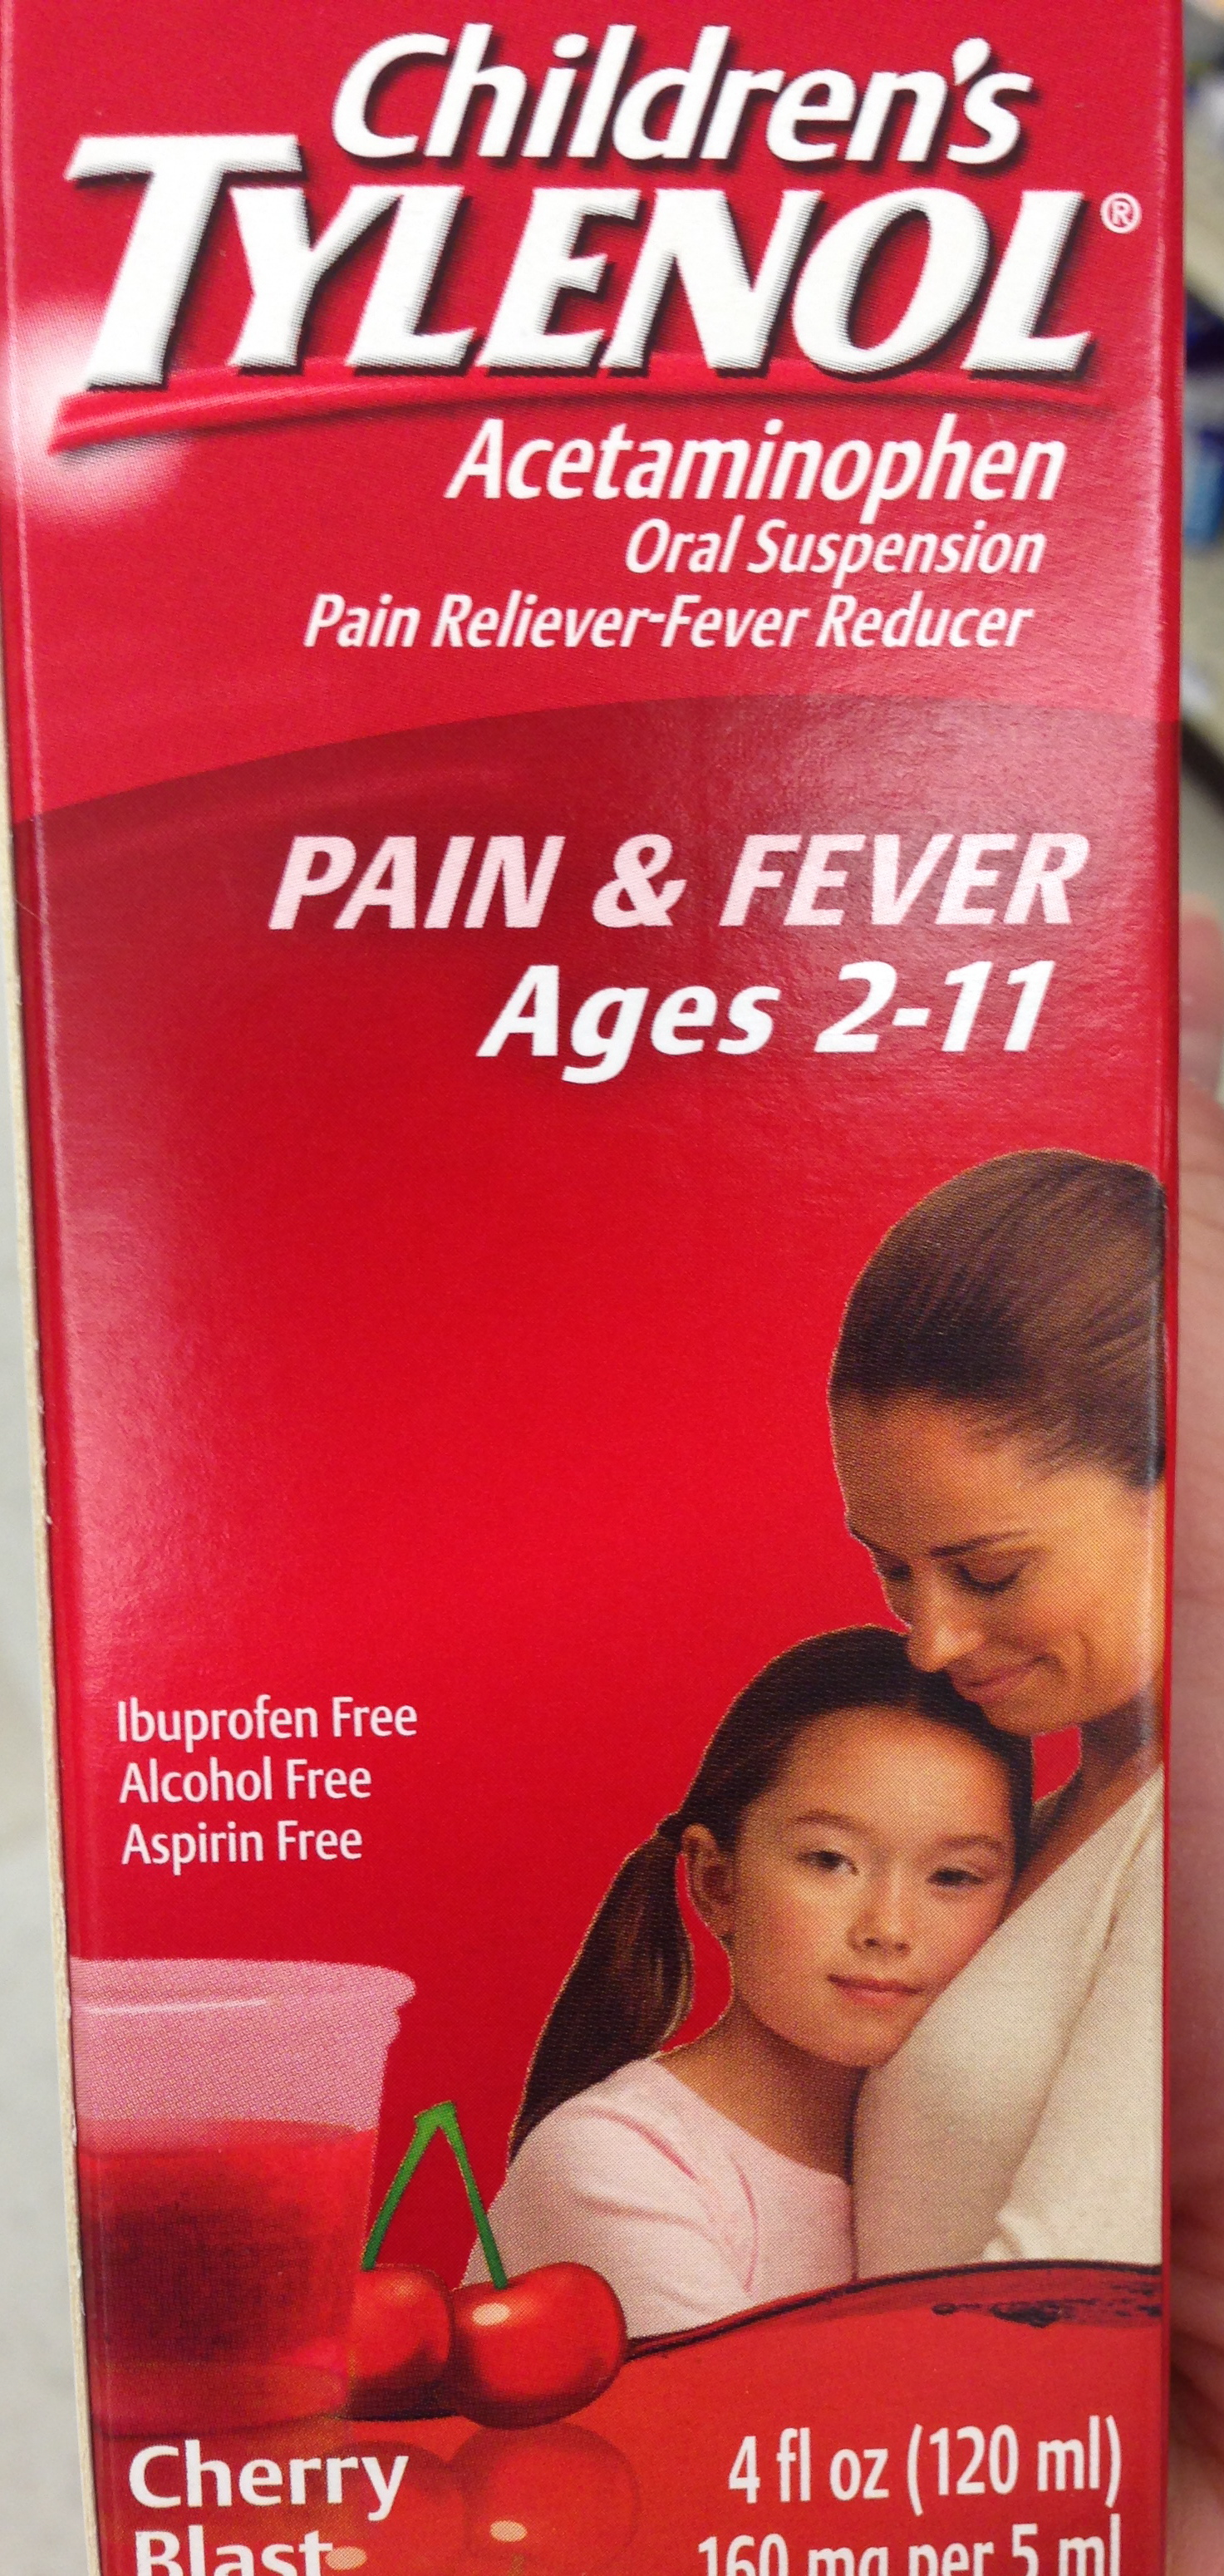 Which medication best reduces fever